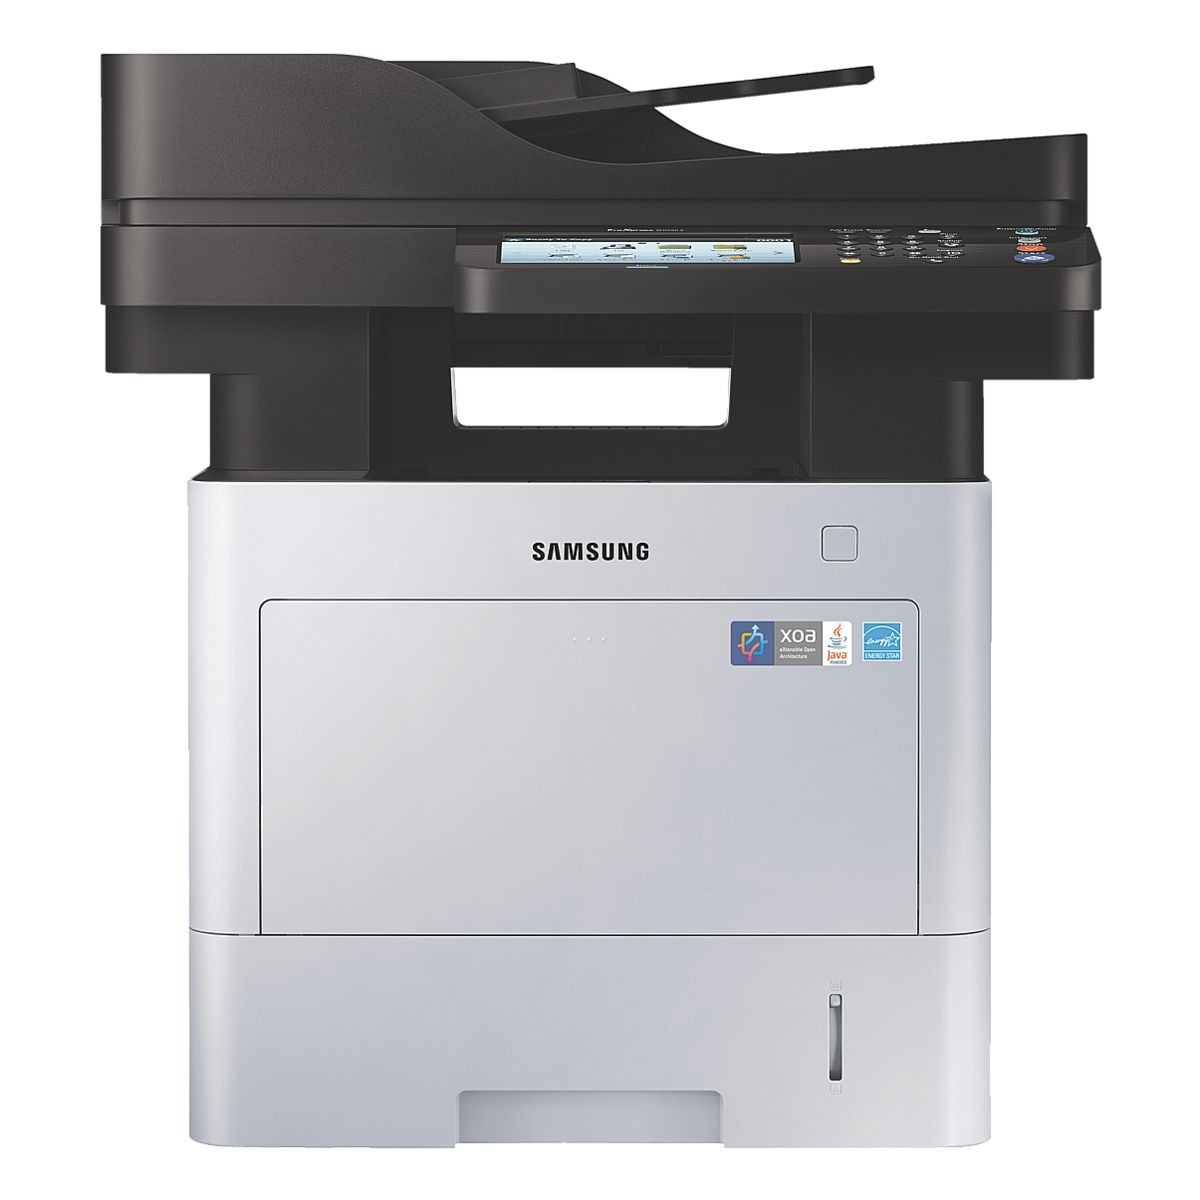 Samsung Multifunktionsdrucker Samsung Multifunktionsdrucker Proxpress M4080fx Bei